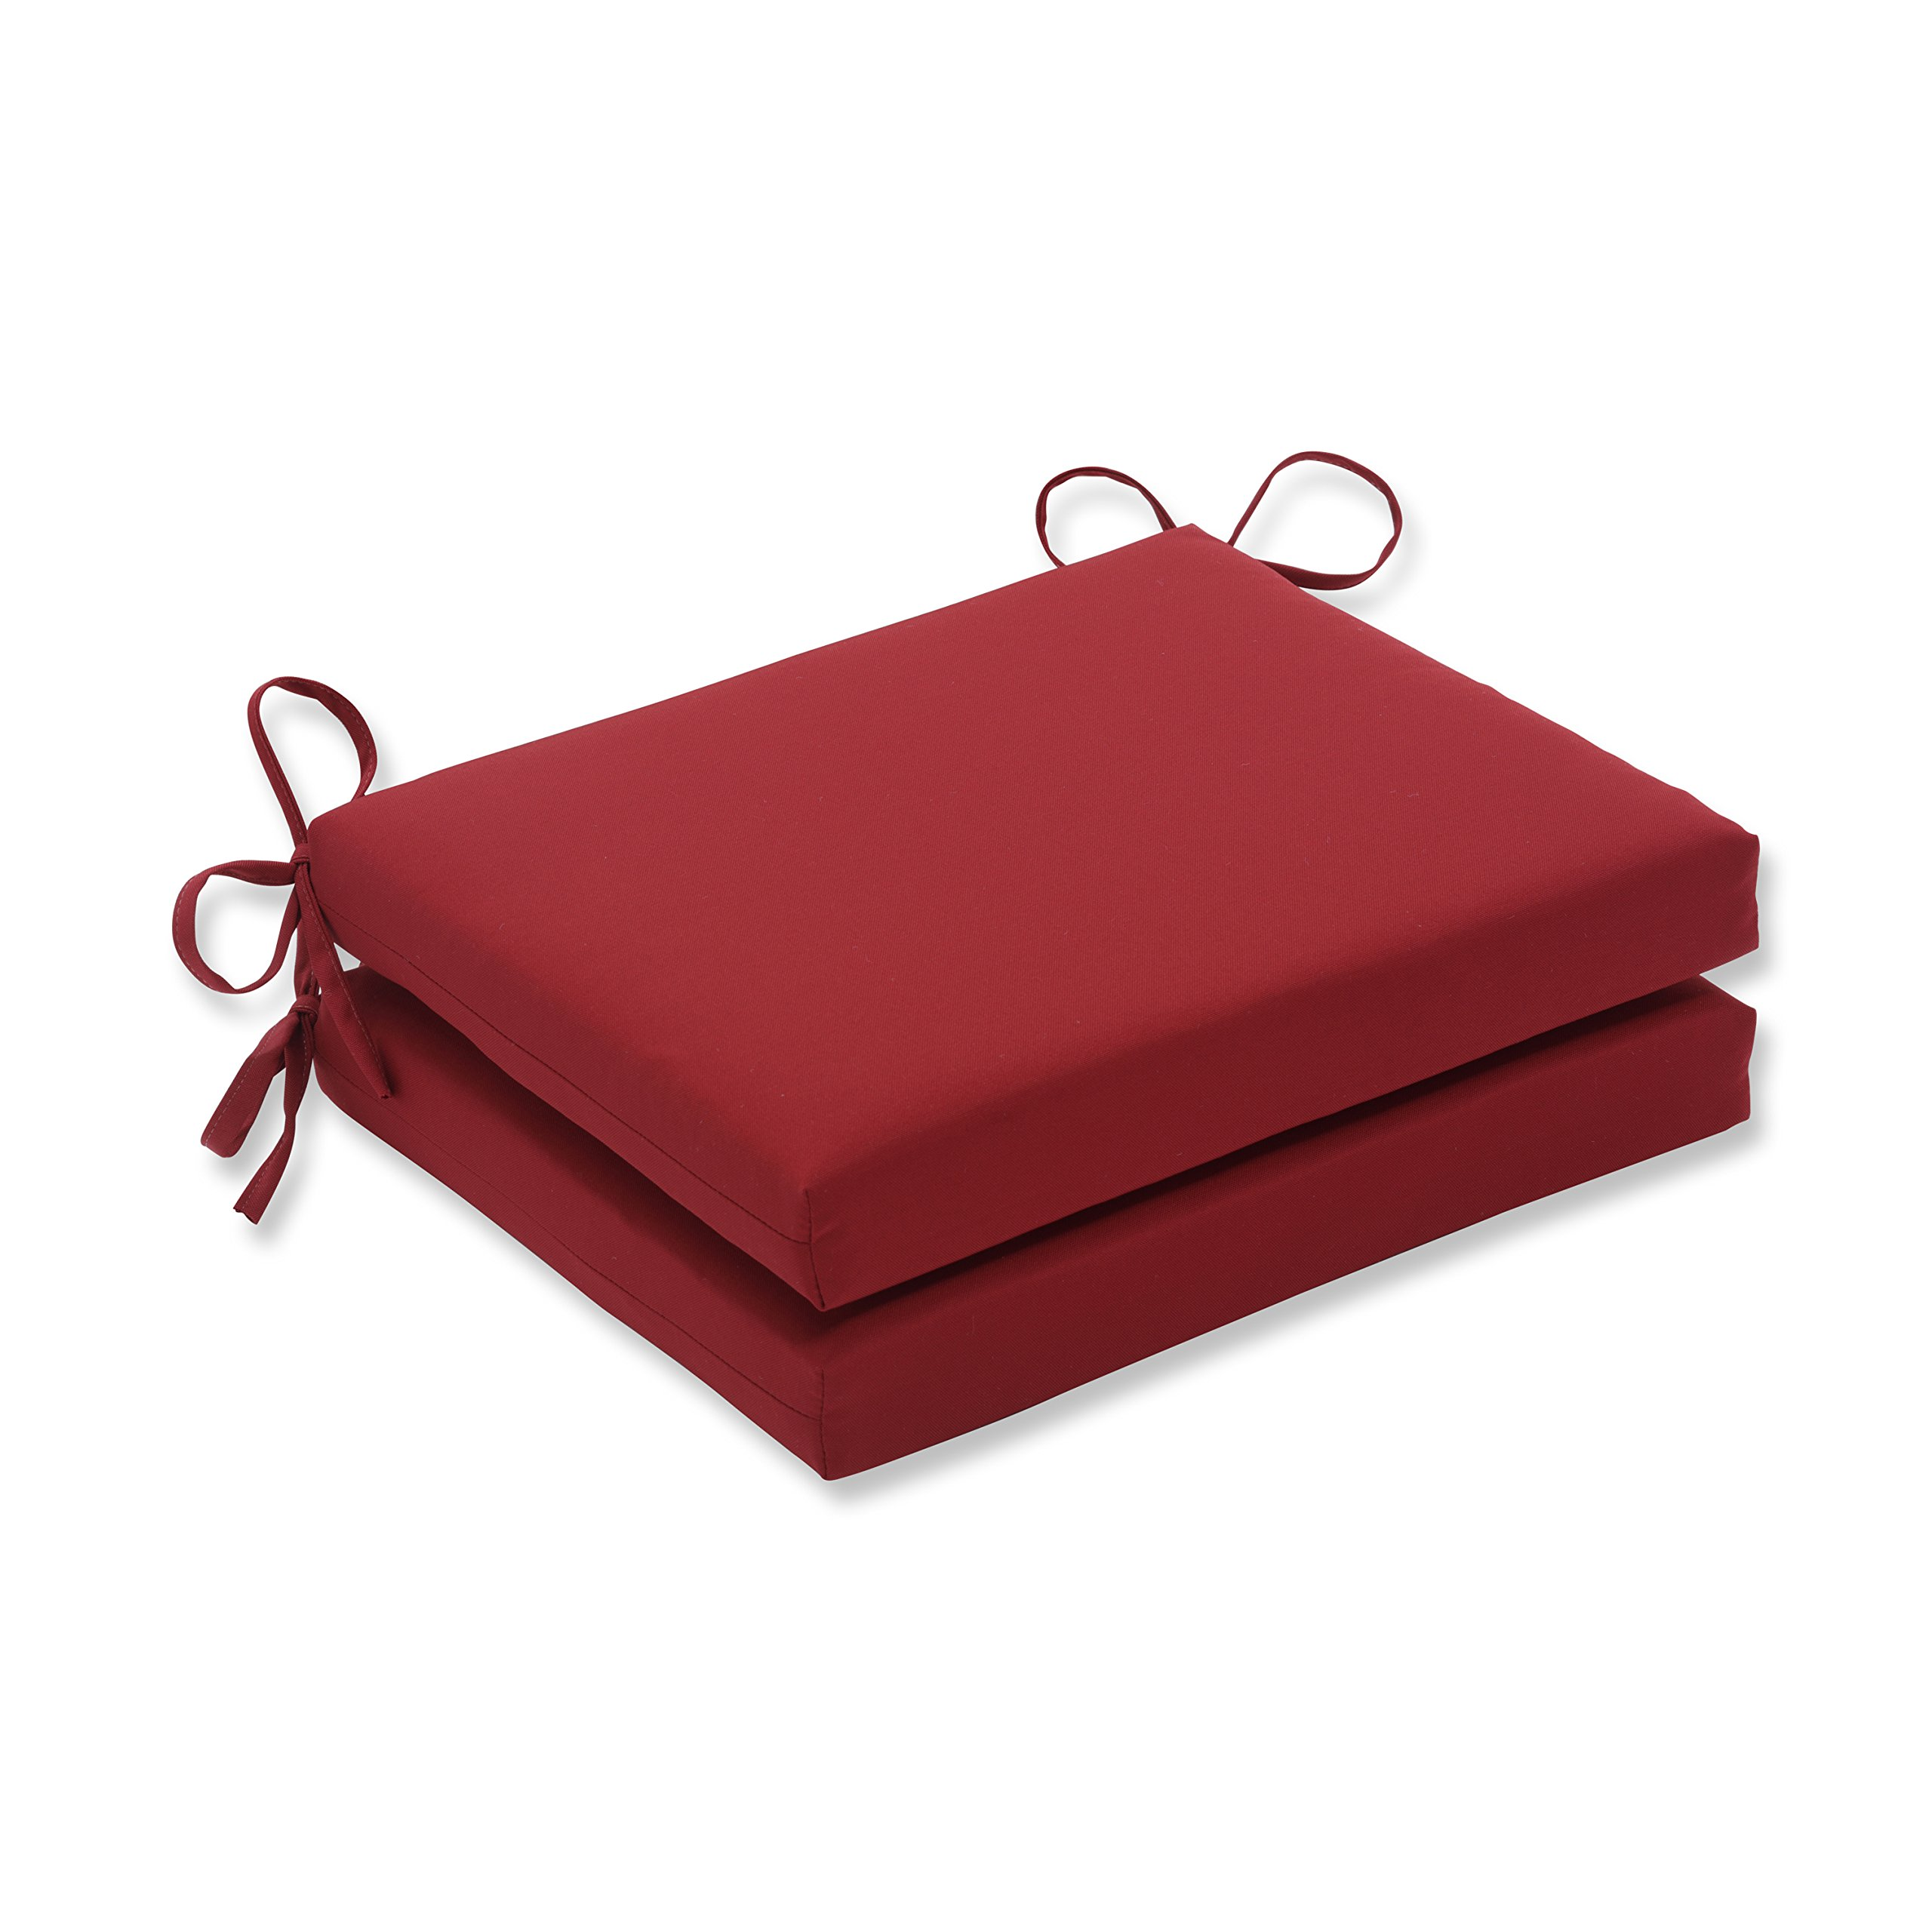 Pillow Perfect Indoor/Outdoor Red Solid Seat Cushion Squared, 2-Pack by Pillow Perfect